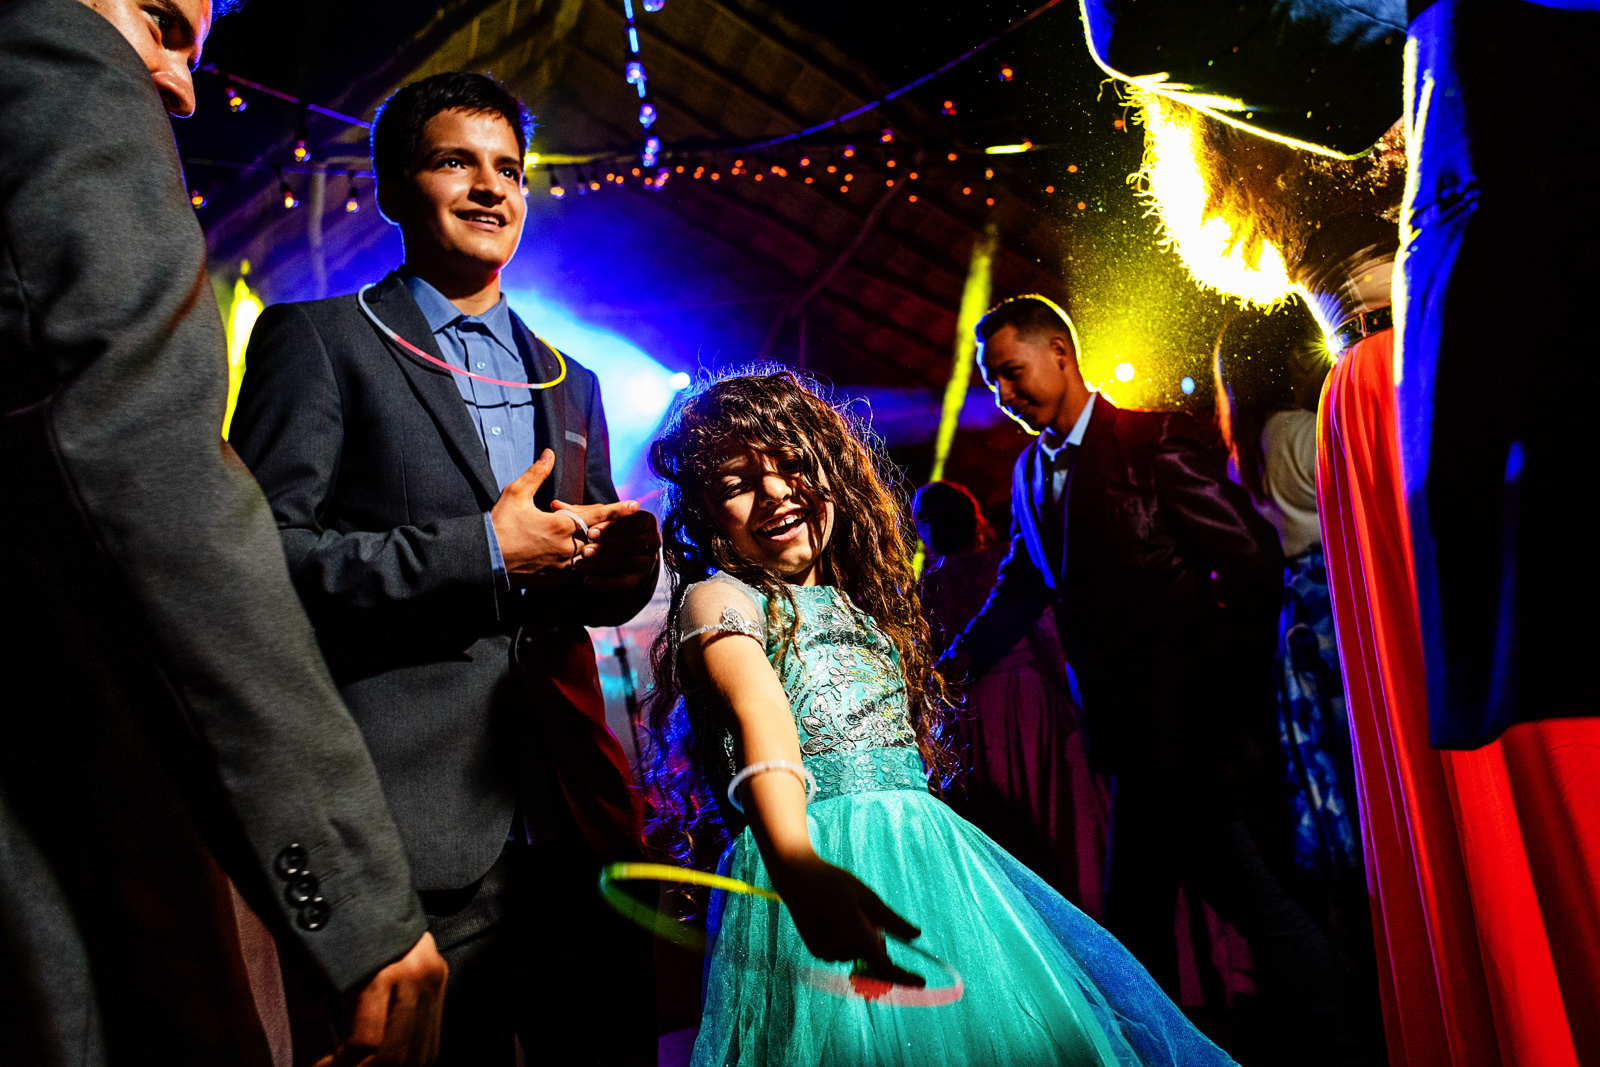 Little girl dancing at her uncle's gay wedding.